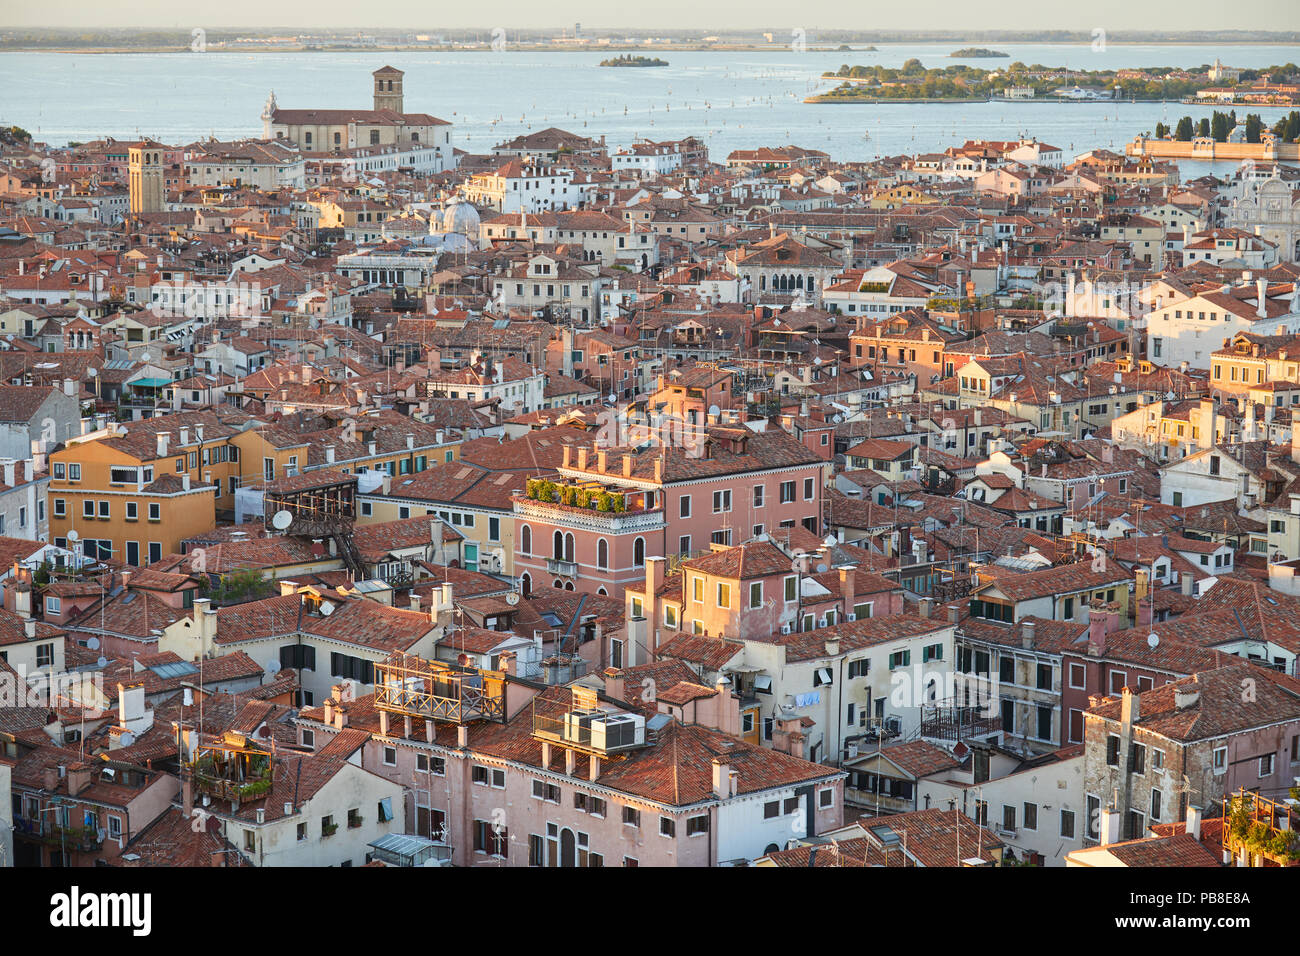 Elevated view of Venice with roofs buildings and sea before sunset, Italy - Stock Image